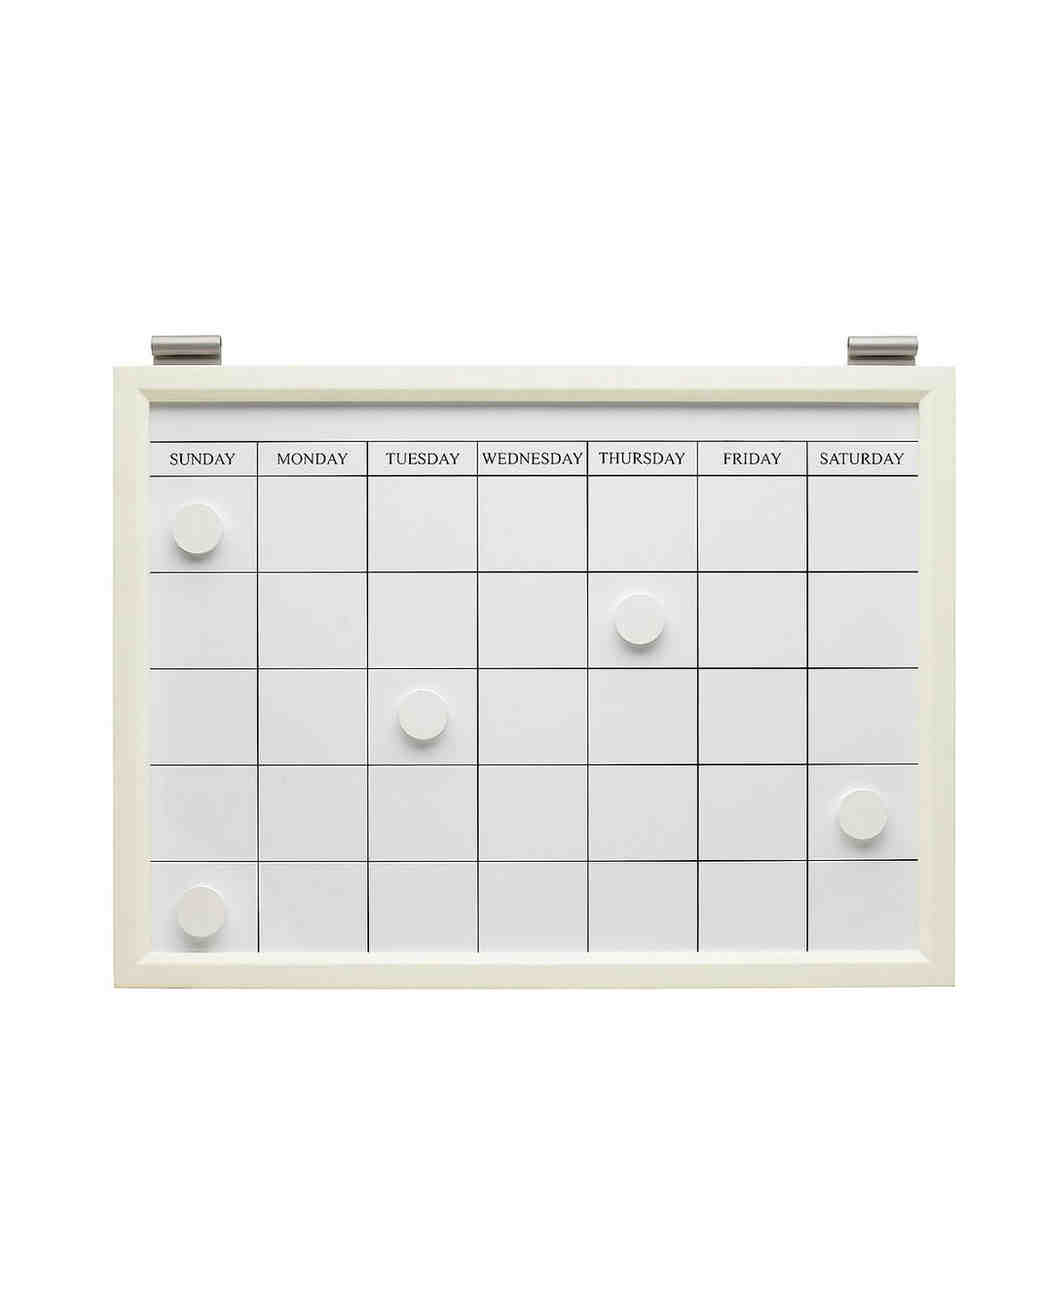 blueprint-team-cleaning-registry-magnetic-whiteboard-calendar-1015.jpg